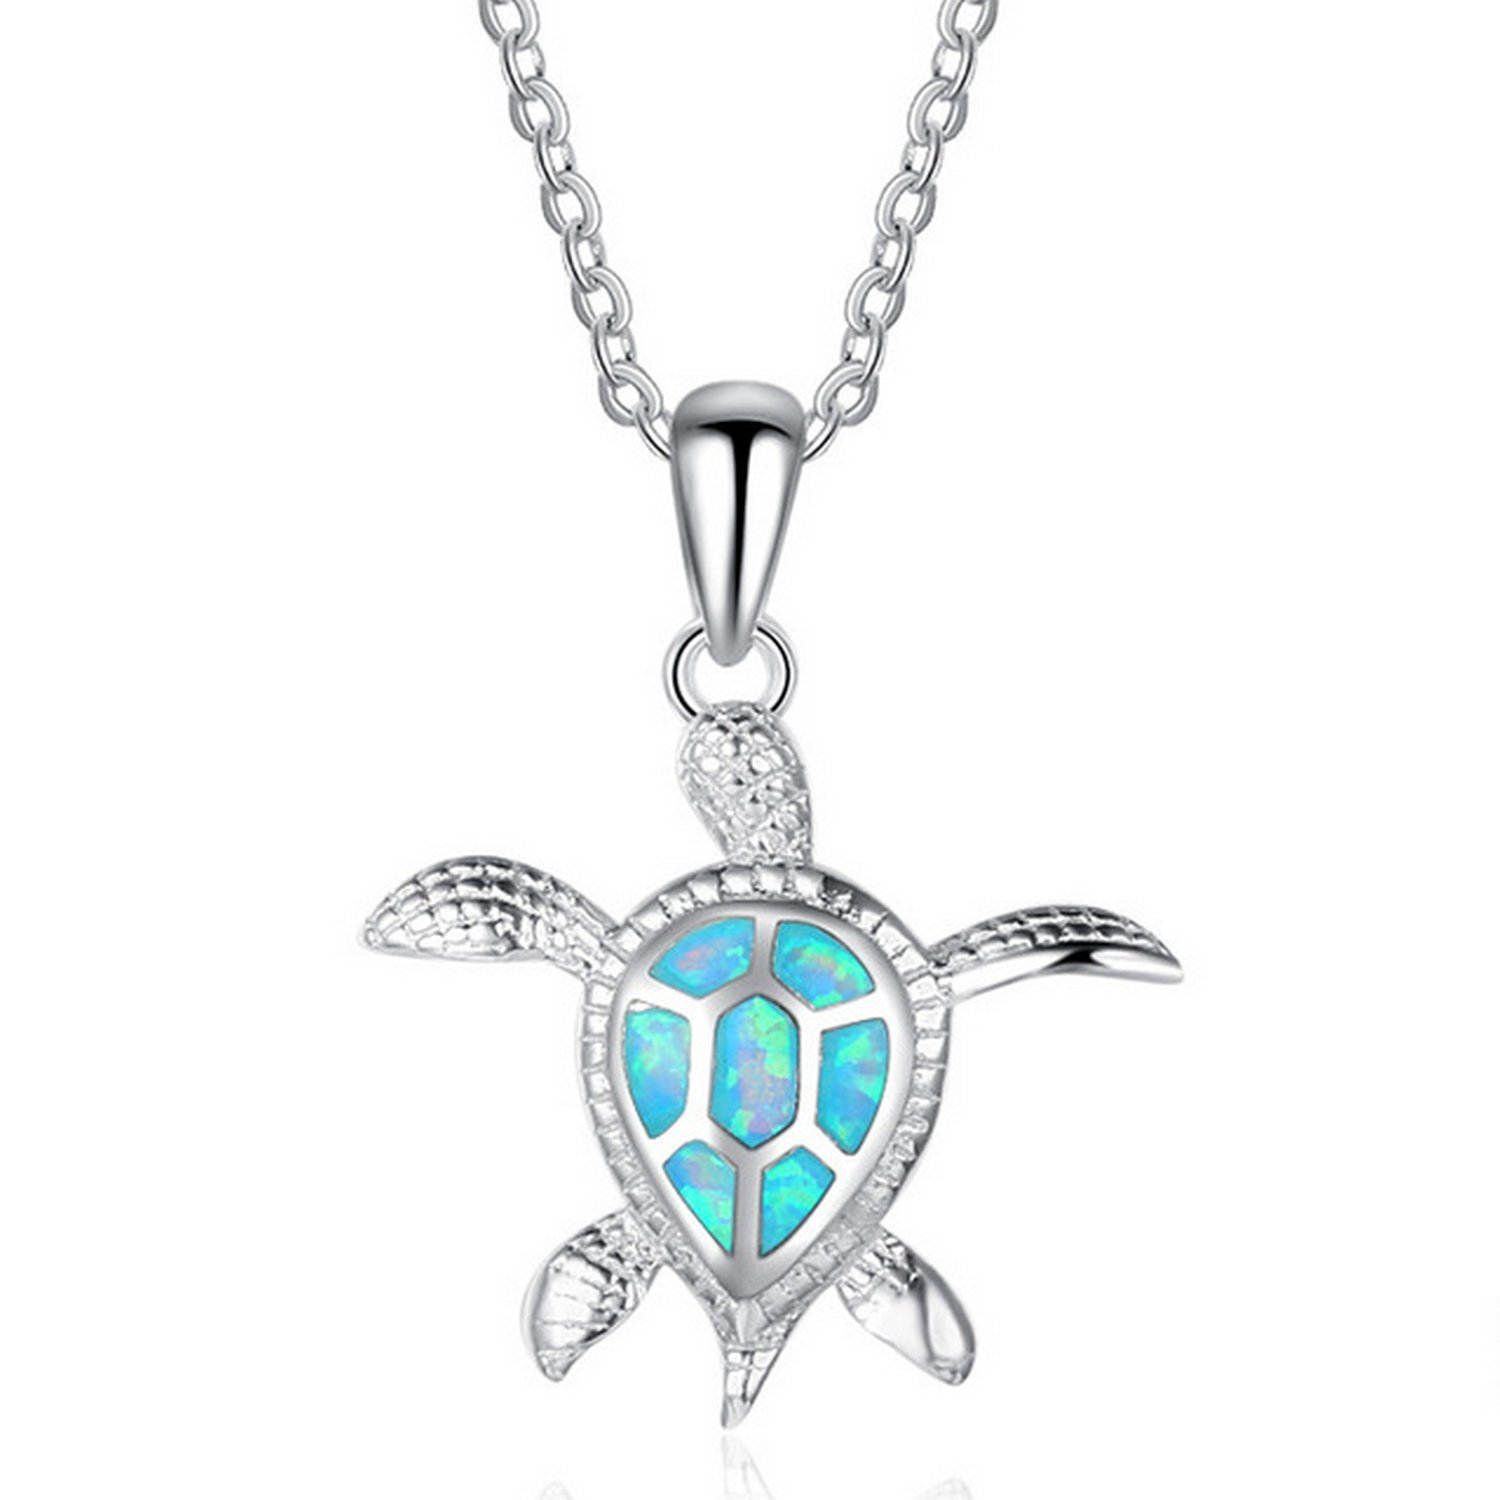 MMC Turtle Charm Silver Pendants Necklaces